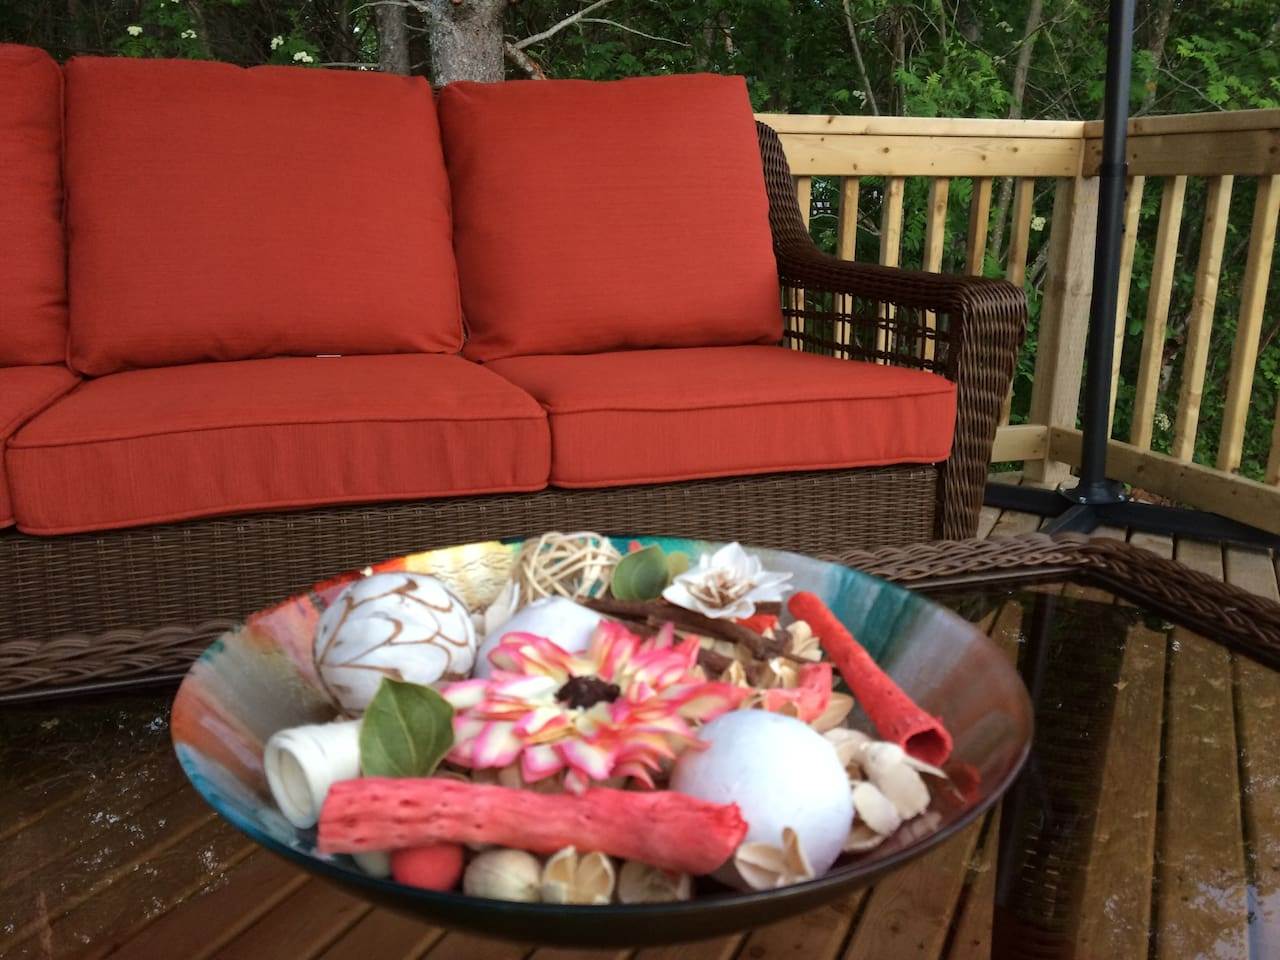 Impression picture of the deck patio set!